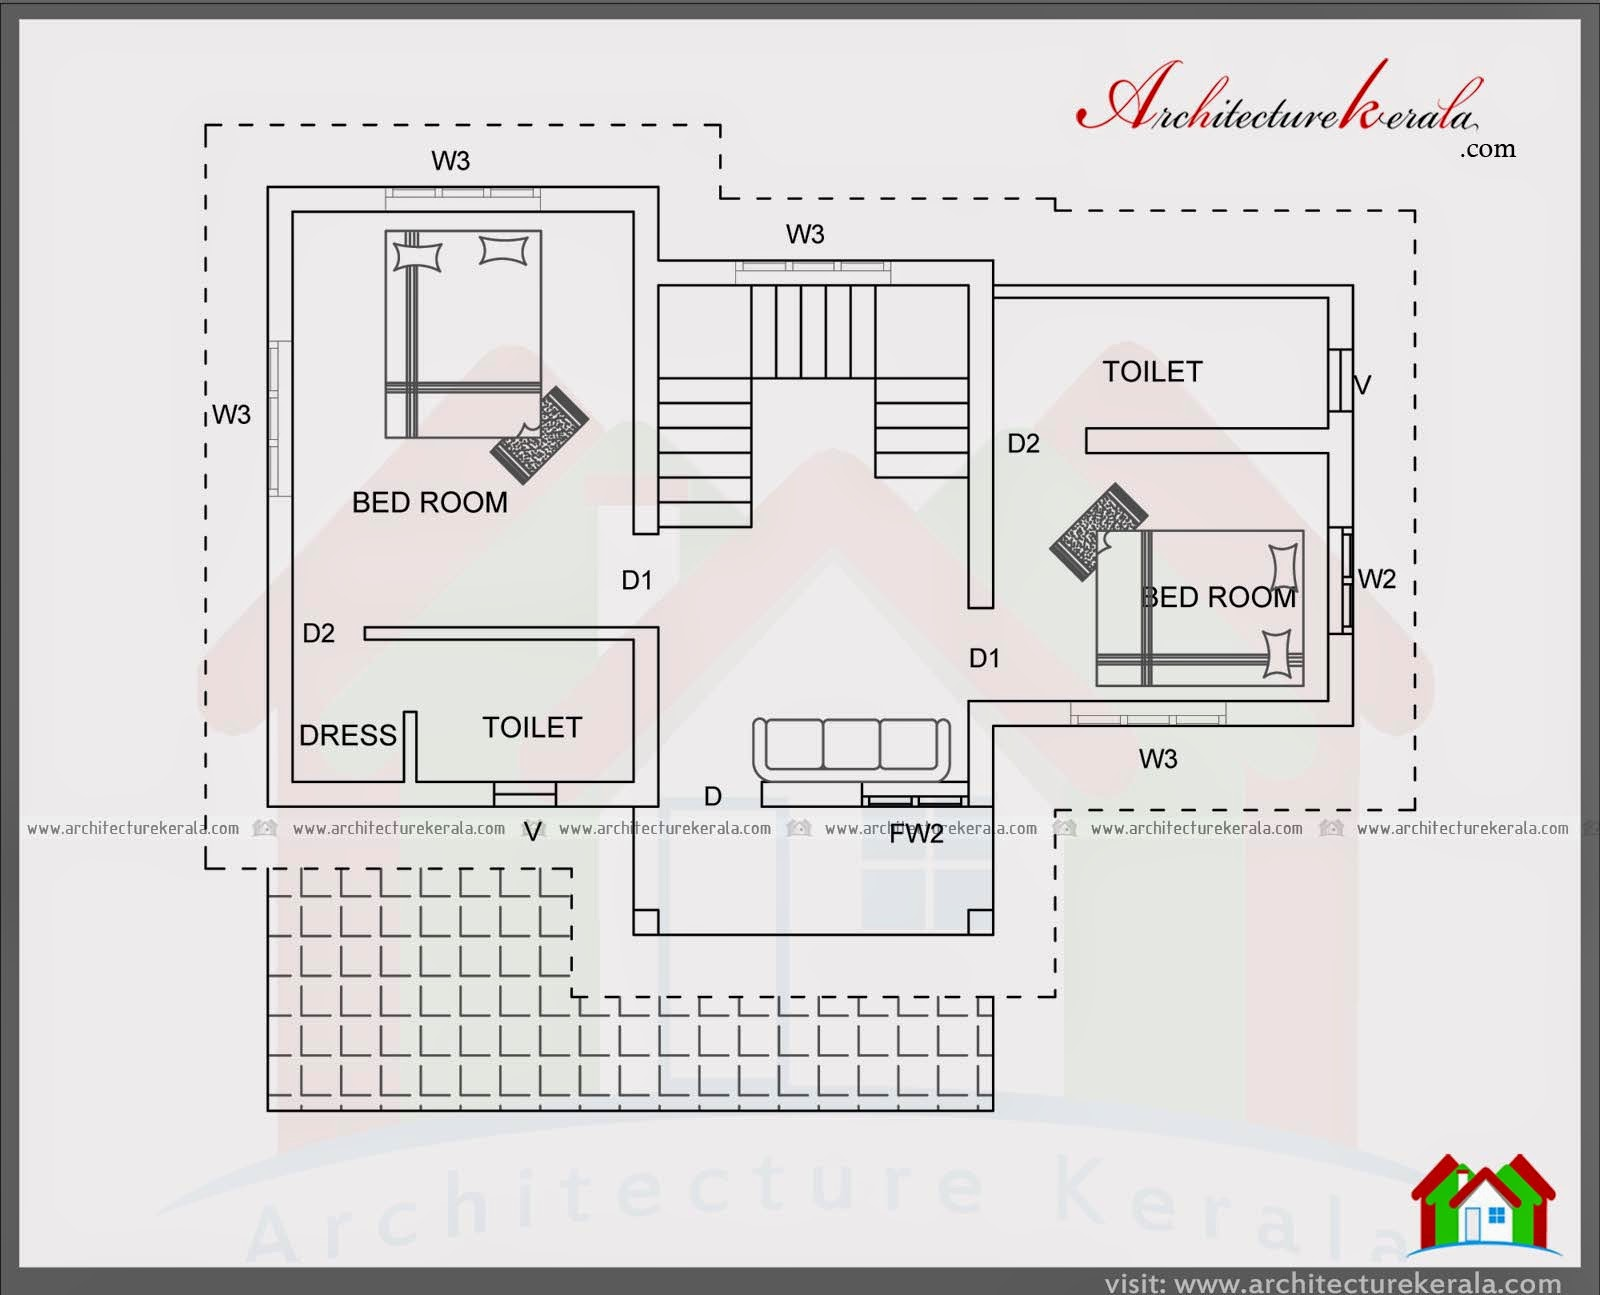 4 bedroom house plan in 1400 square feet architecture kerala for Kerala house plans 4 bedroom